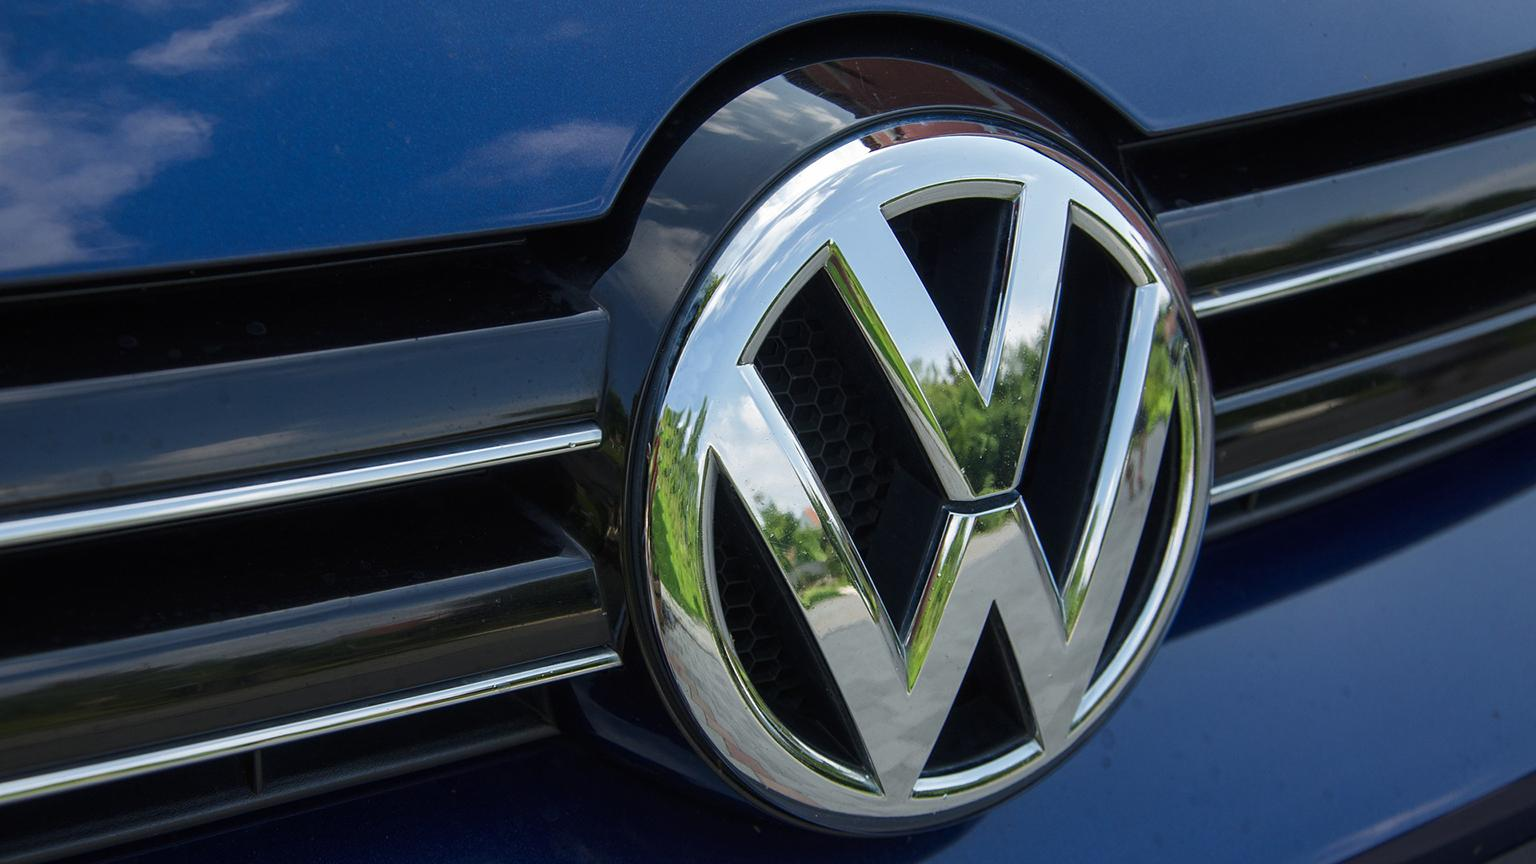 VW Settlement: Illinois Awards $19M for Cleaner Bus and Train